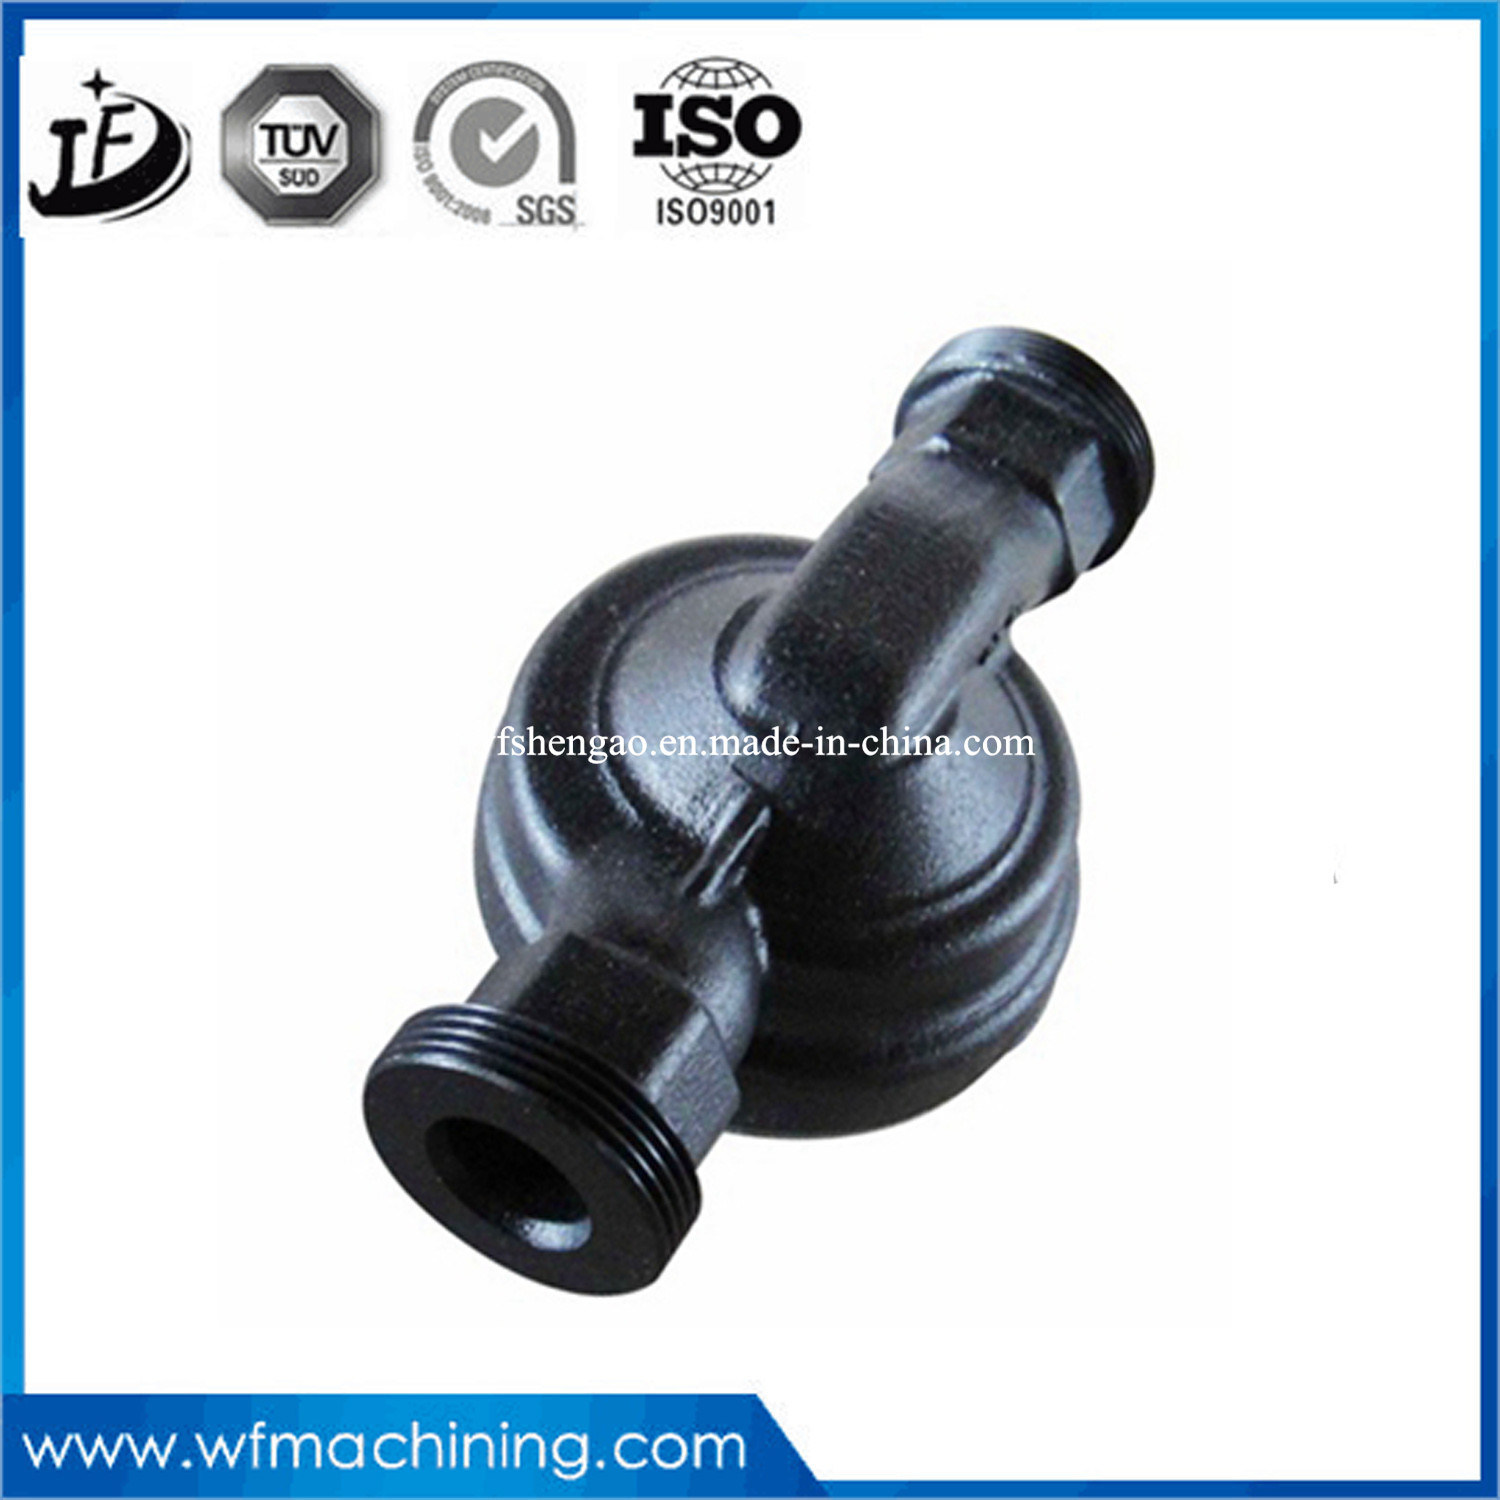 OEM Metal Foundry Grey/Ductile Iron Casting Pipe Fitting with Metal Processing